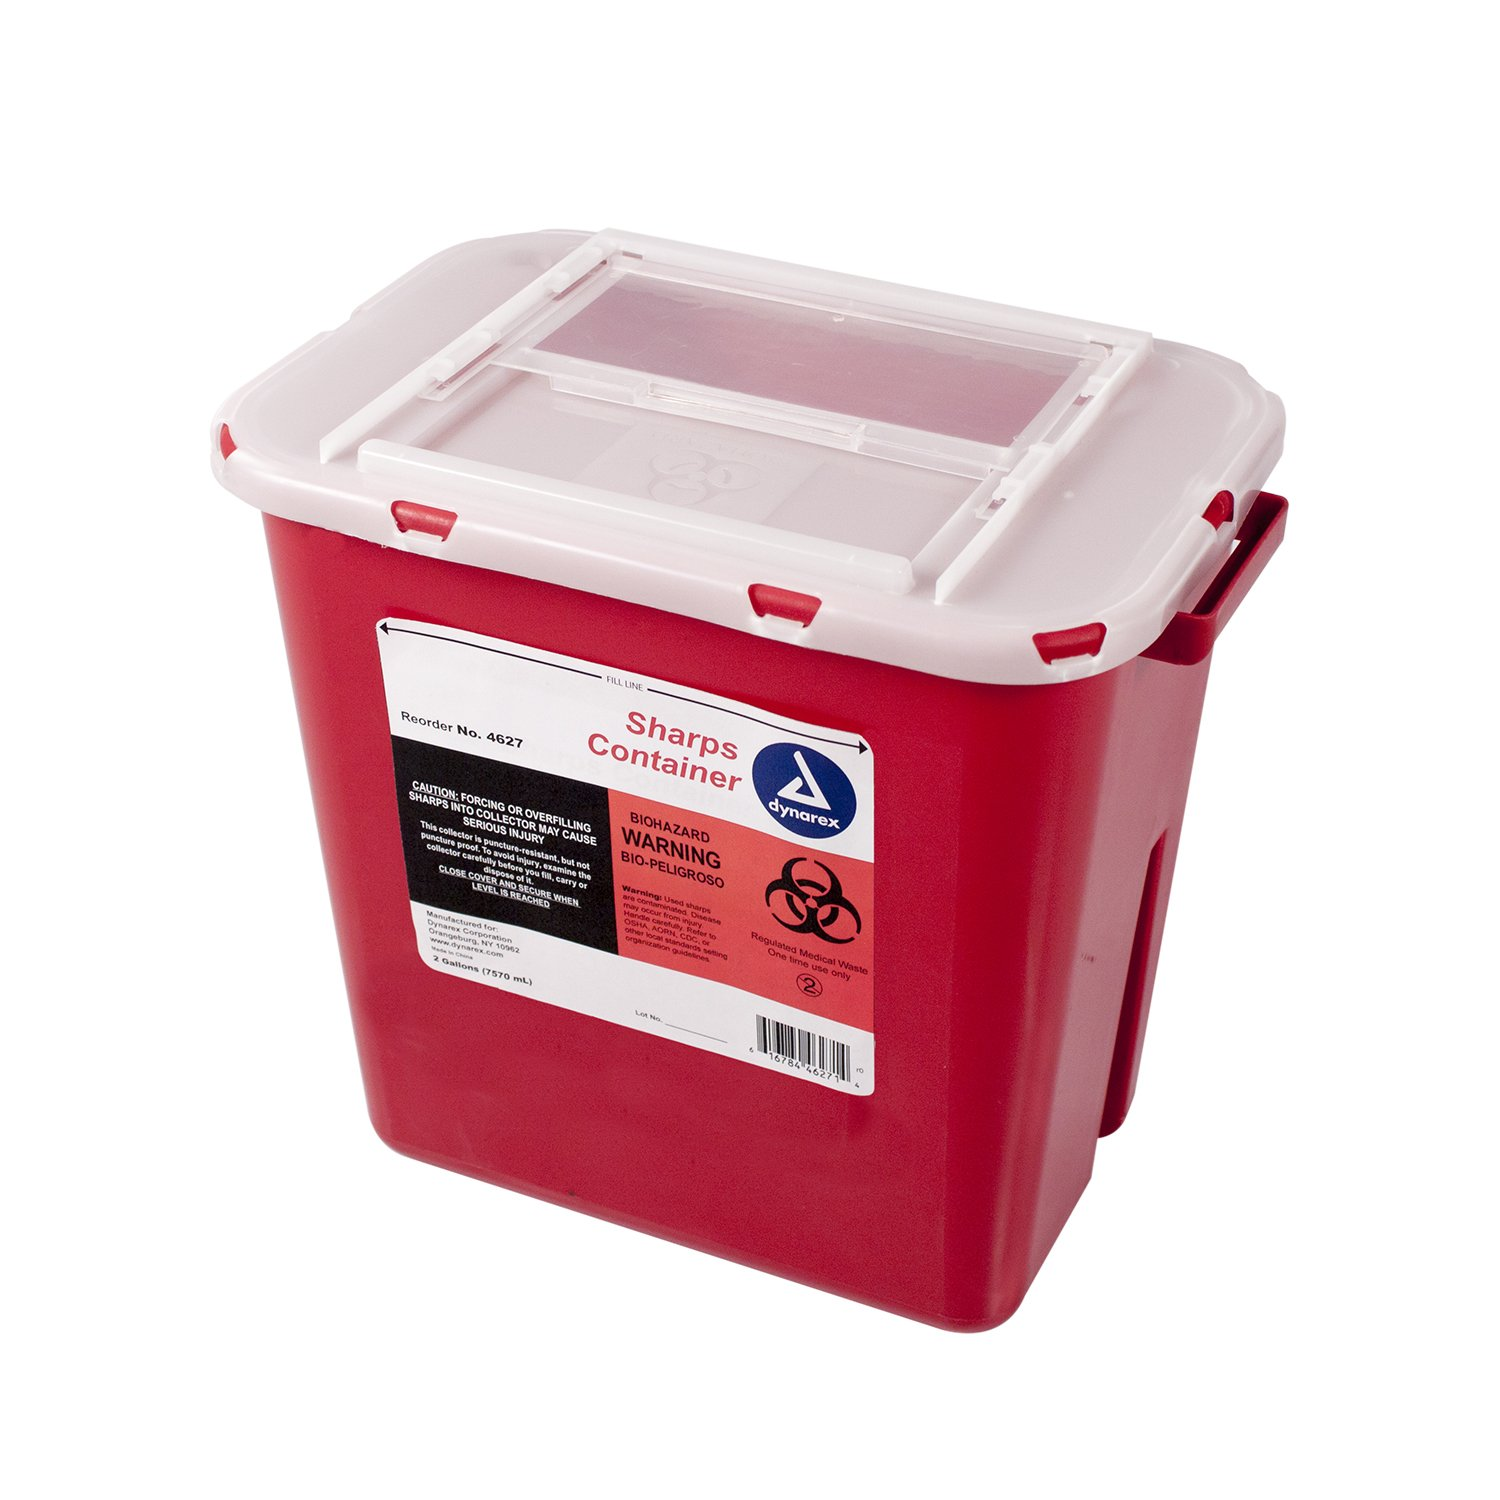 Dynarex Sharps Container - Biohazard Multiple-Use Needle Disposable - Puncture Resistant - One Handed Use - 2 Gallon